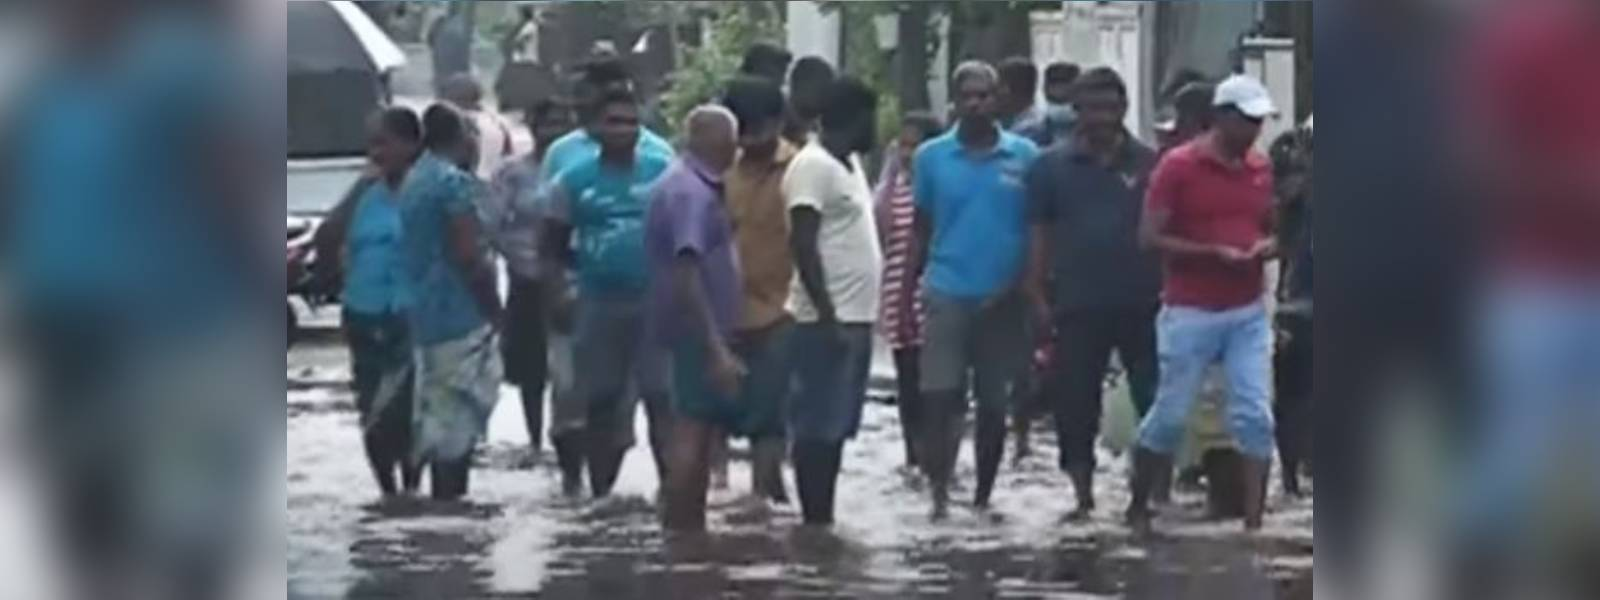 Moratuwa residents stage protest demanding drainage system